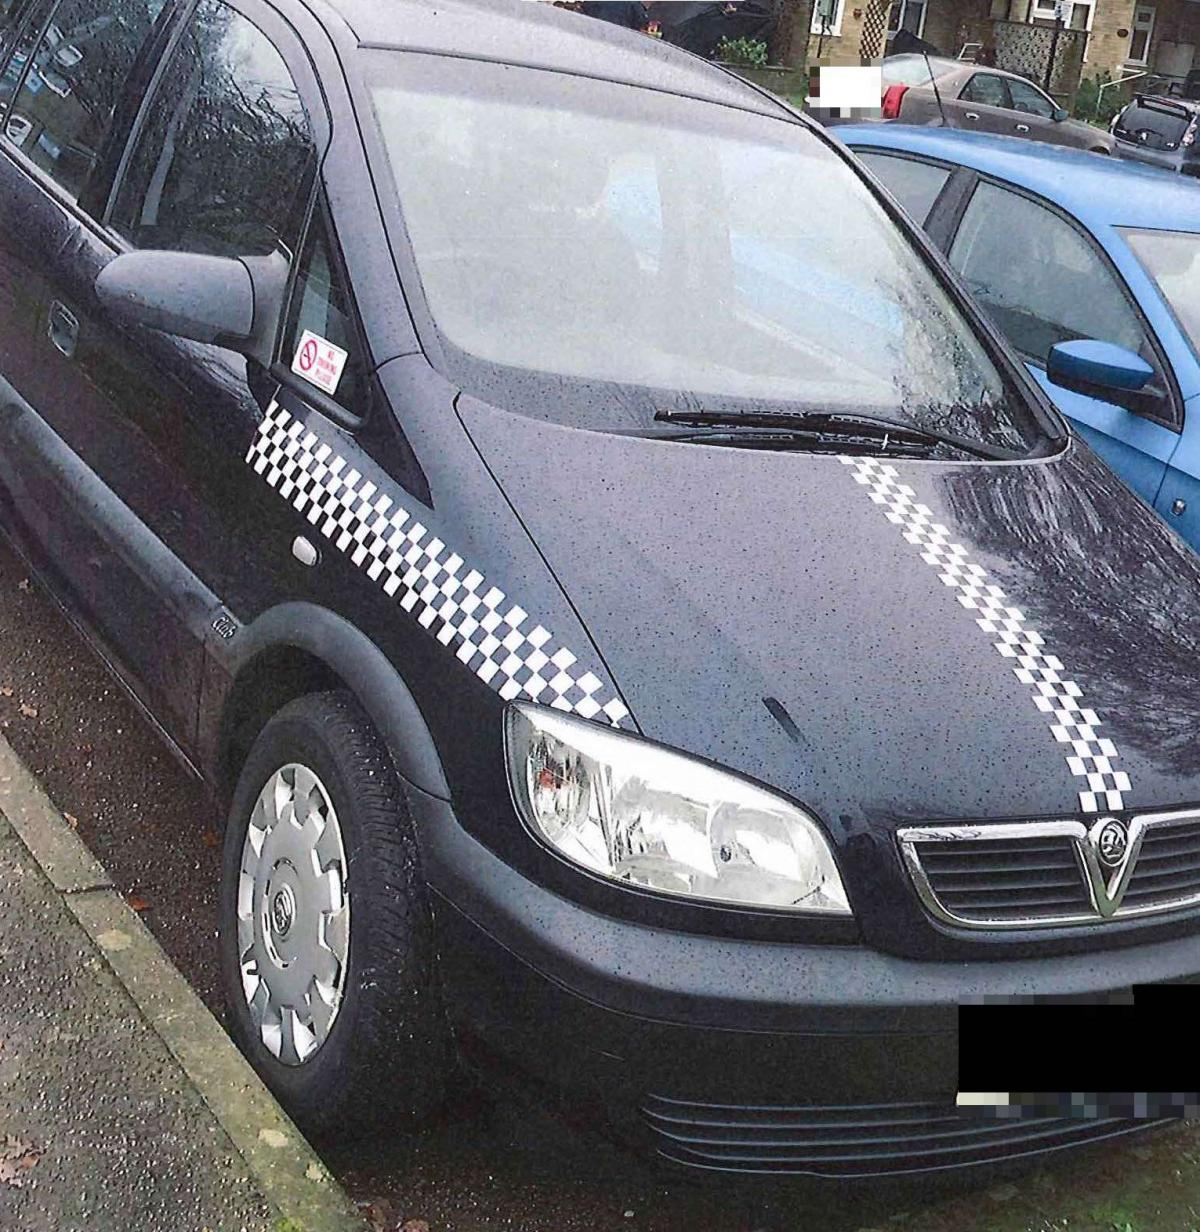 Fake Taxi Driver Dennis Hewlett Prosecuted By Council